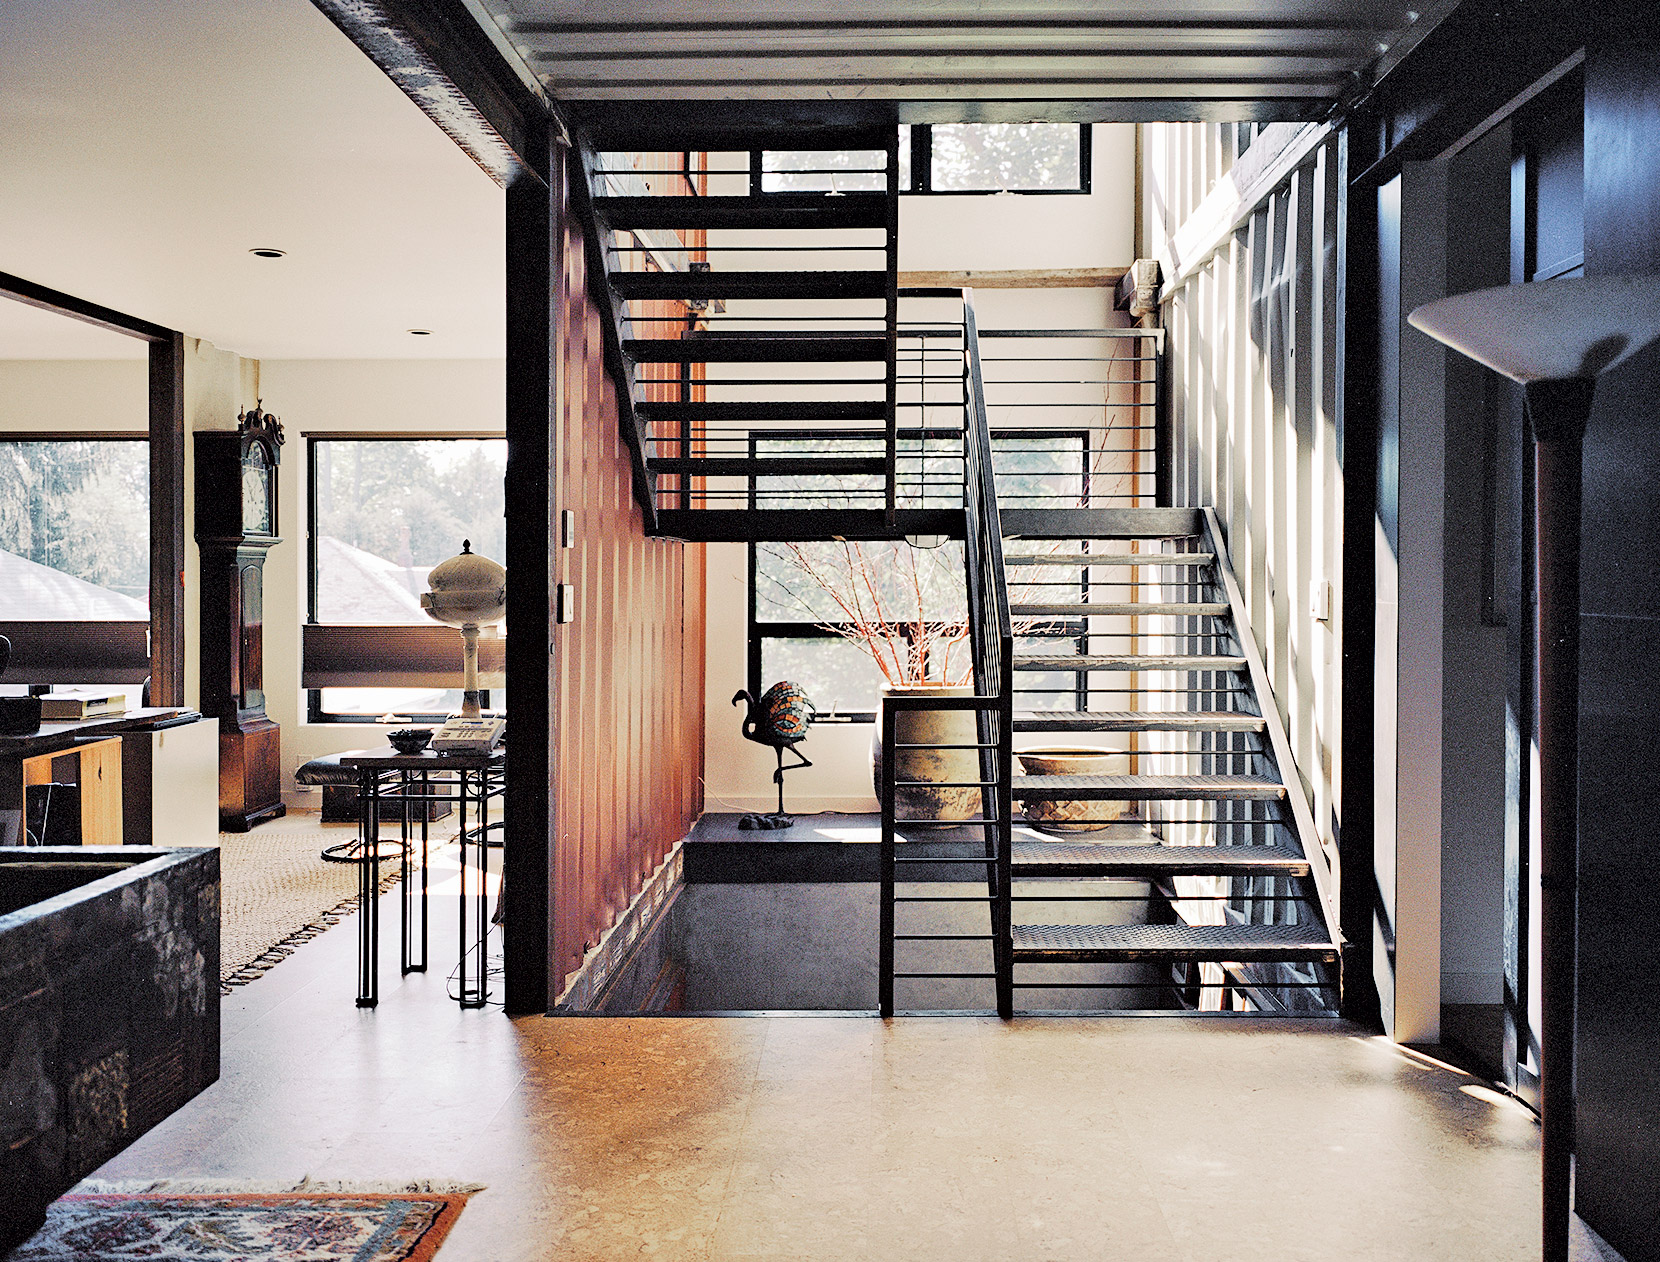 Industrially-styled stairway of shipping container home in Pennsylvania off the Delaware River